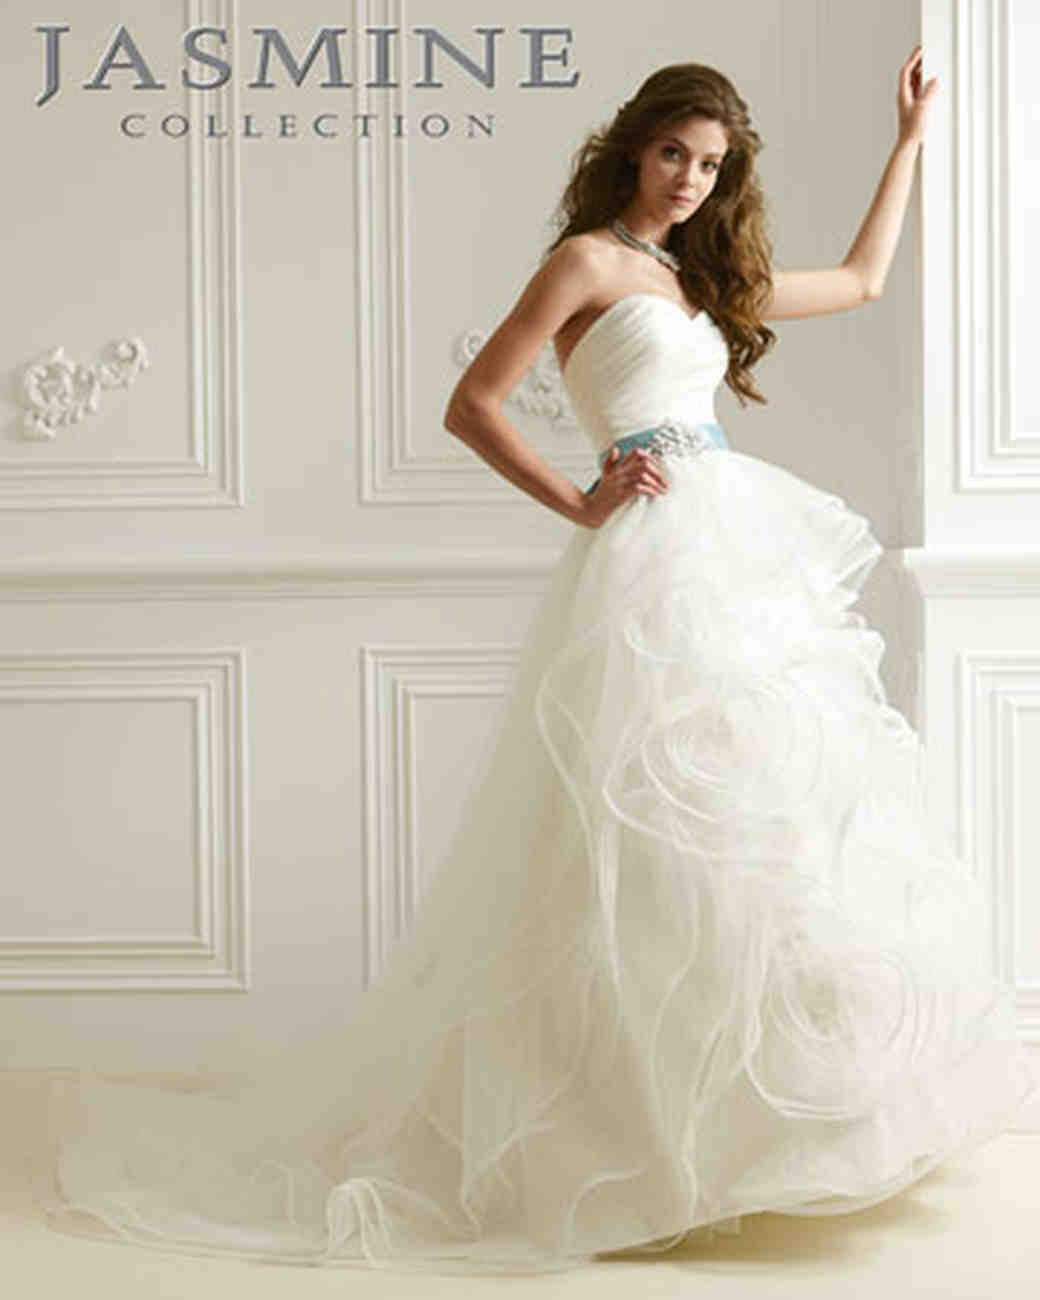 9c8705fc22e29 Jasmine Collection, Spring 2012 Collection | Martha Stewart Weddings